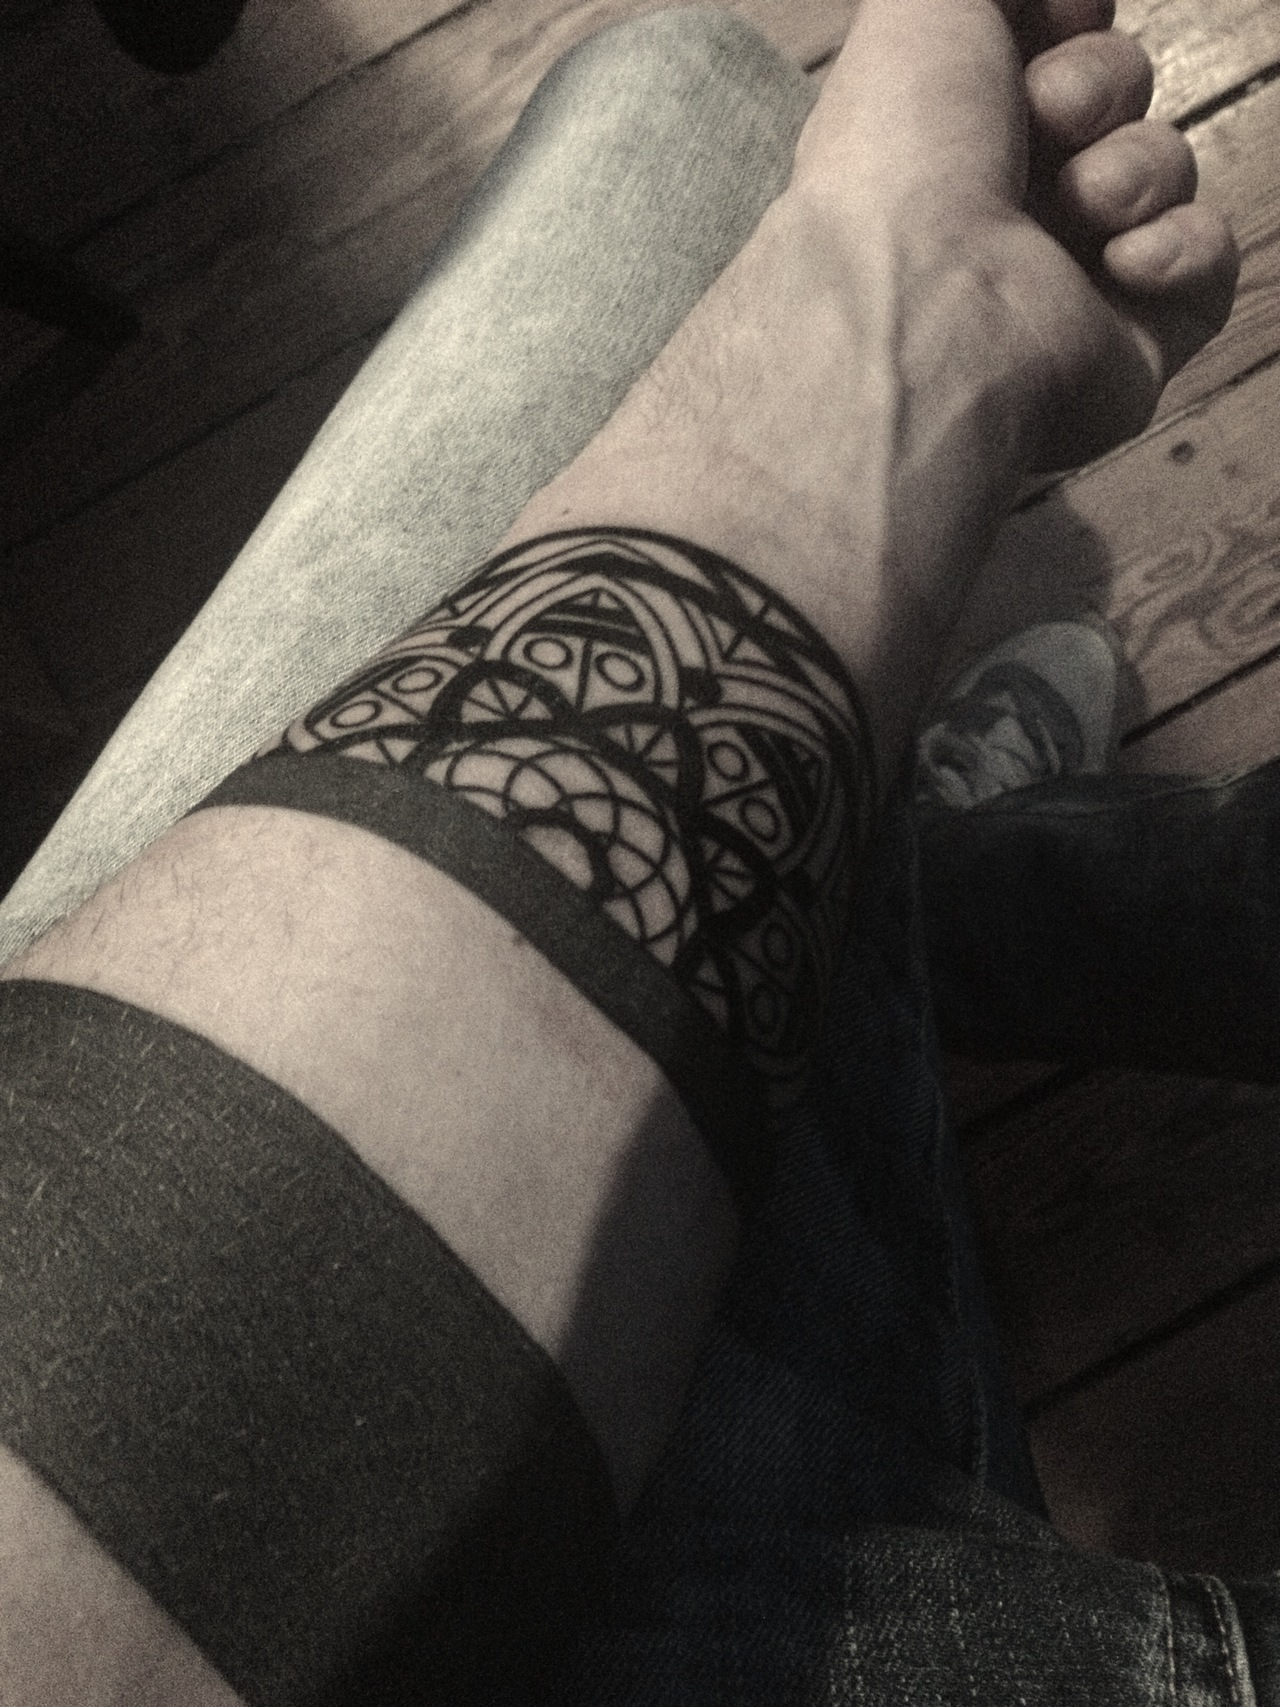 Black pattern tattoo